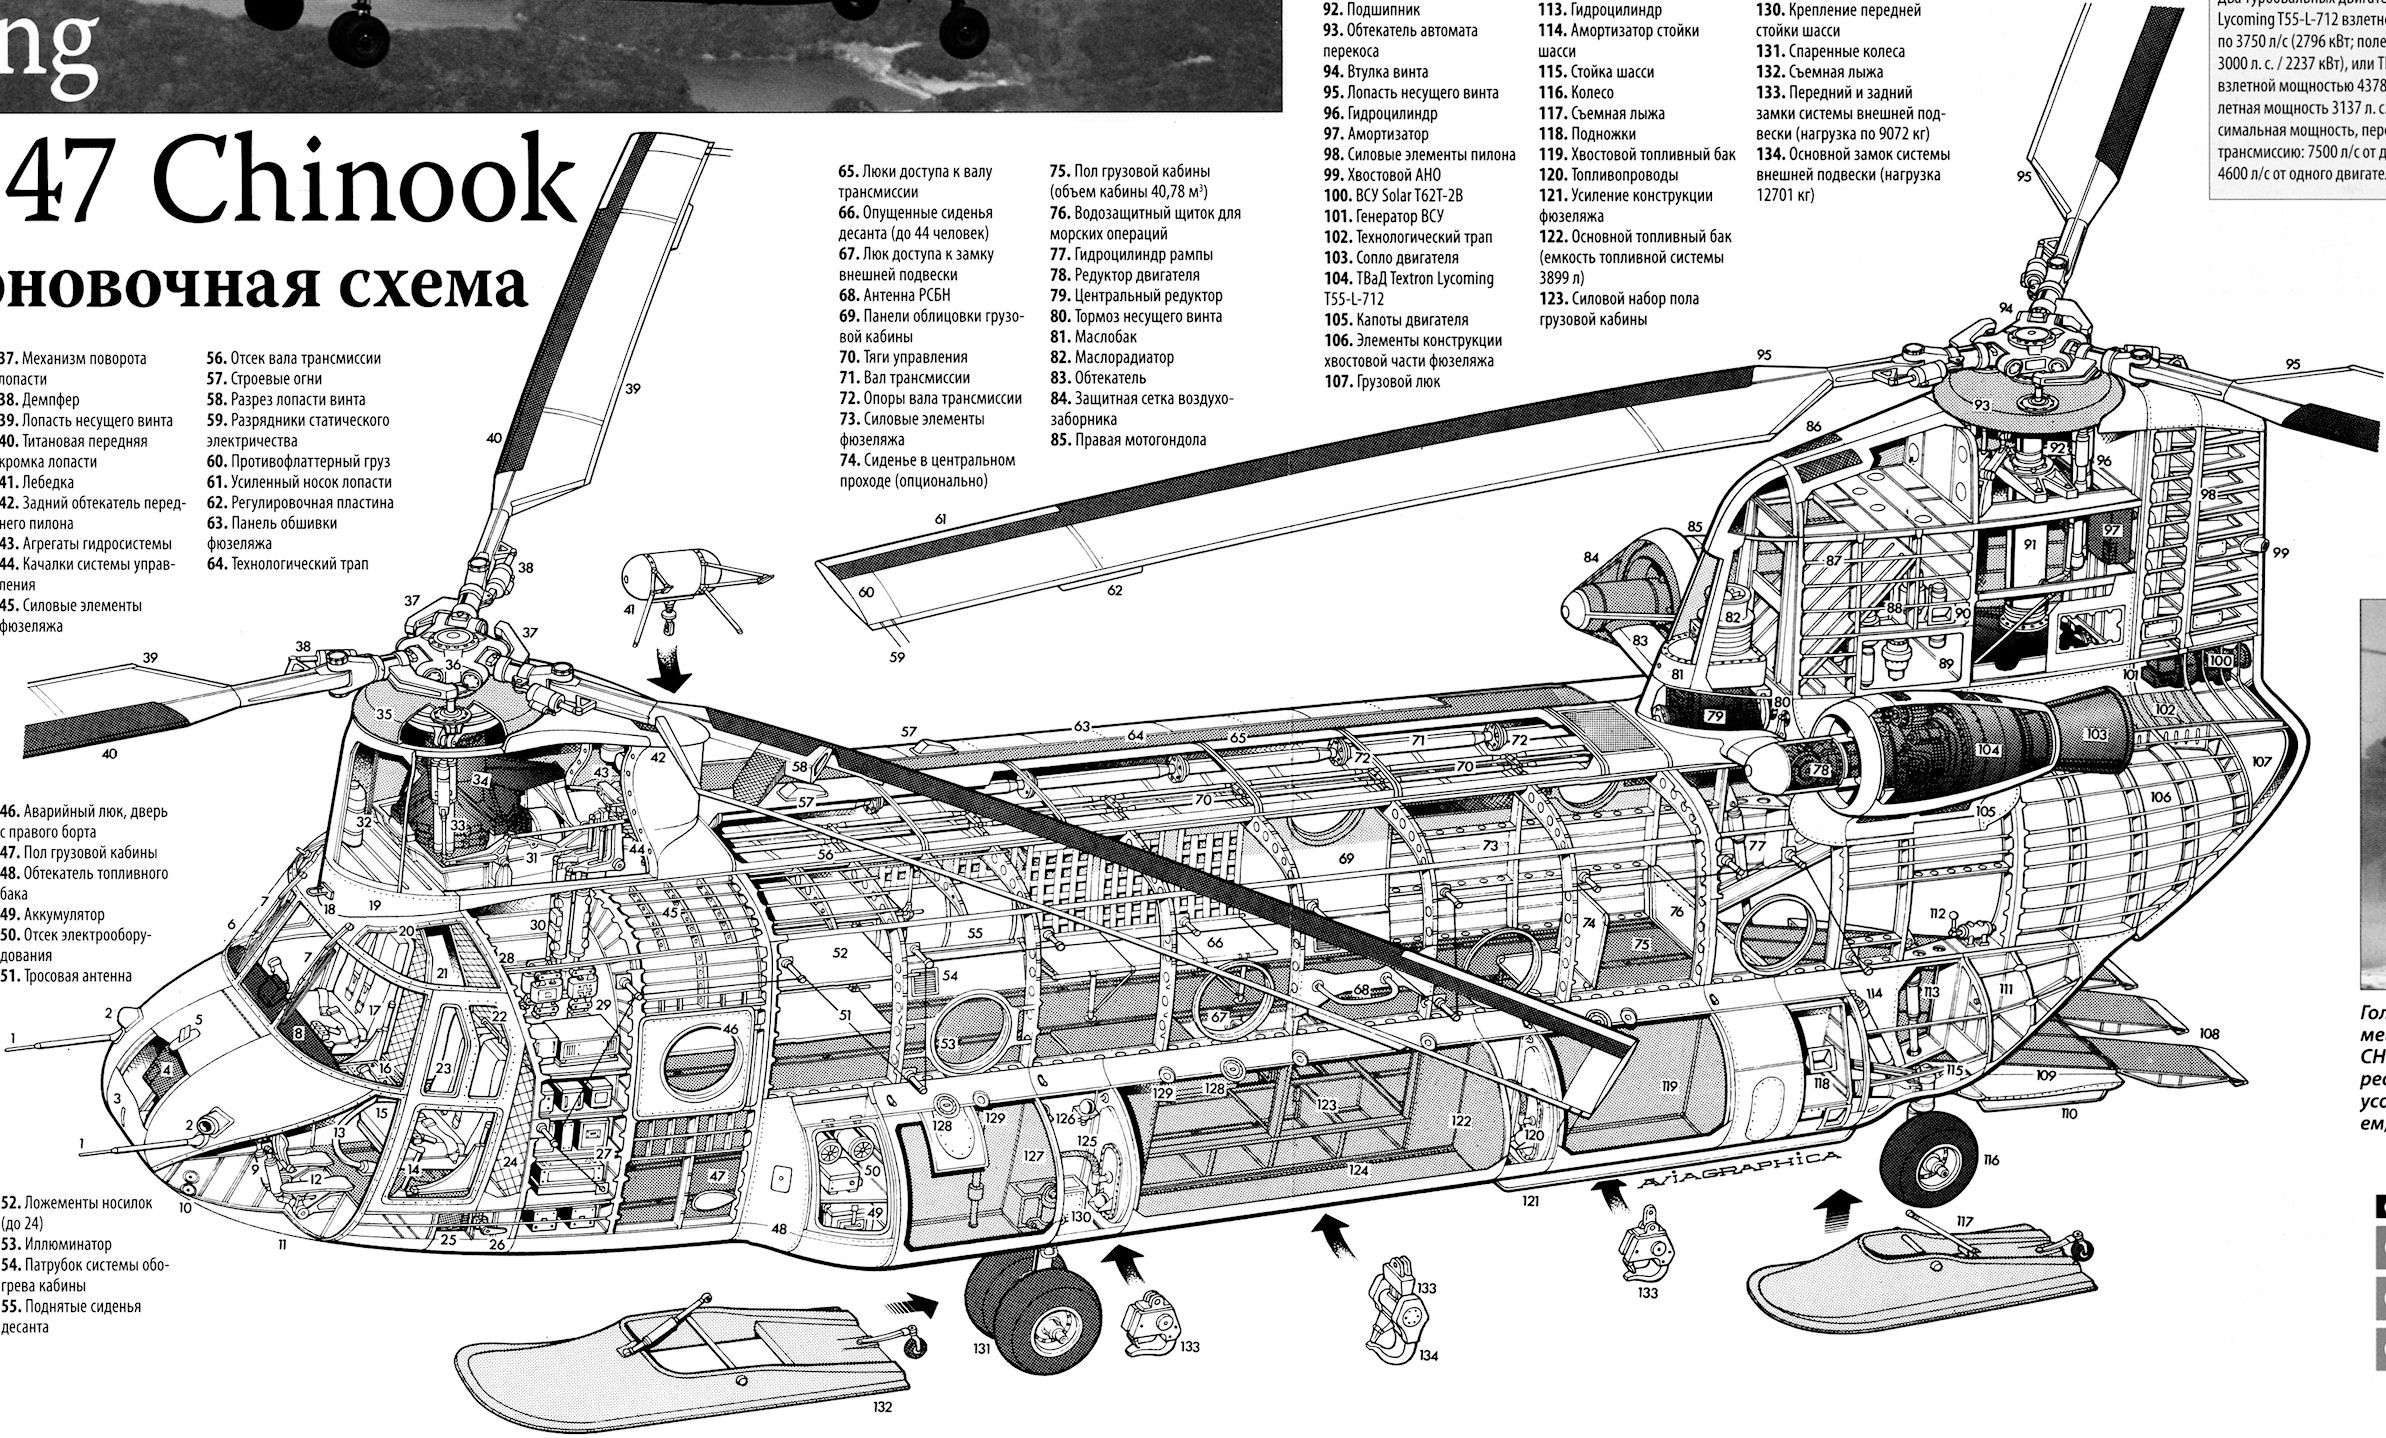 aircarft cutaway boeing ch 47 chinook chinook helicopters attack helicopter military helicopter  [ 2386 x 1438 Pixel ]